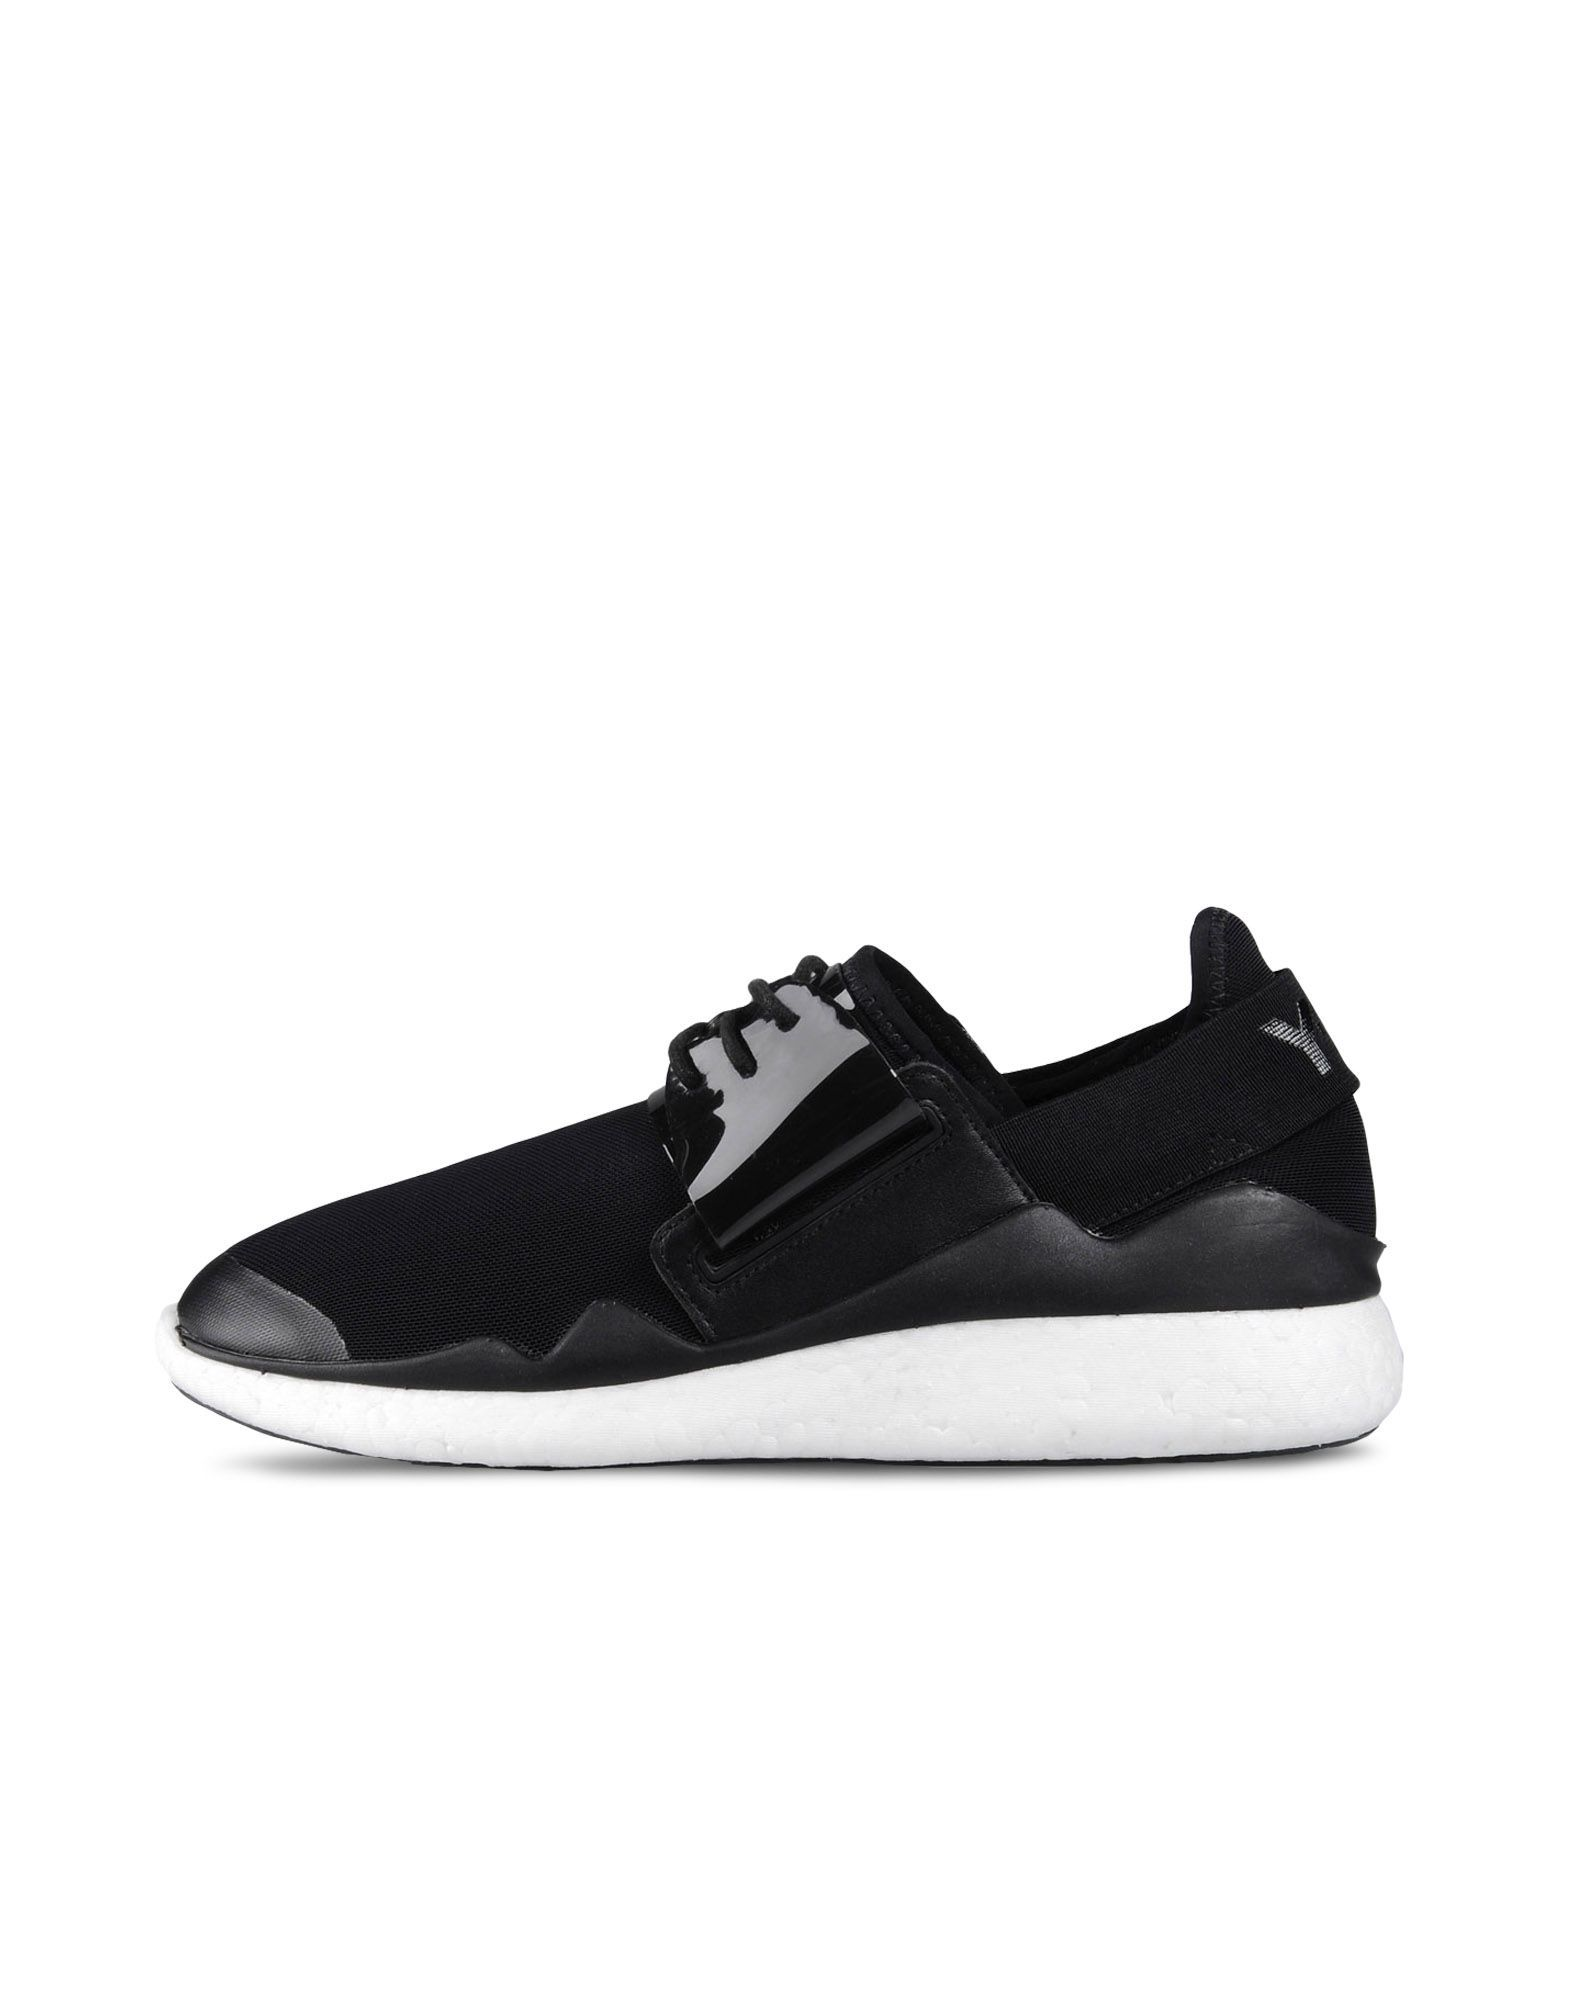 Check out the Y 3 CHIMU BOOST Sneakers for Women and order today on the  official Adidas online store.